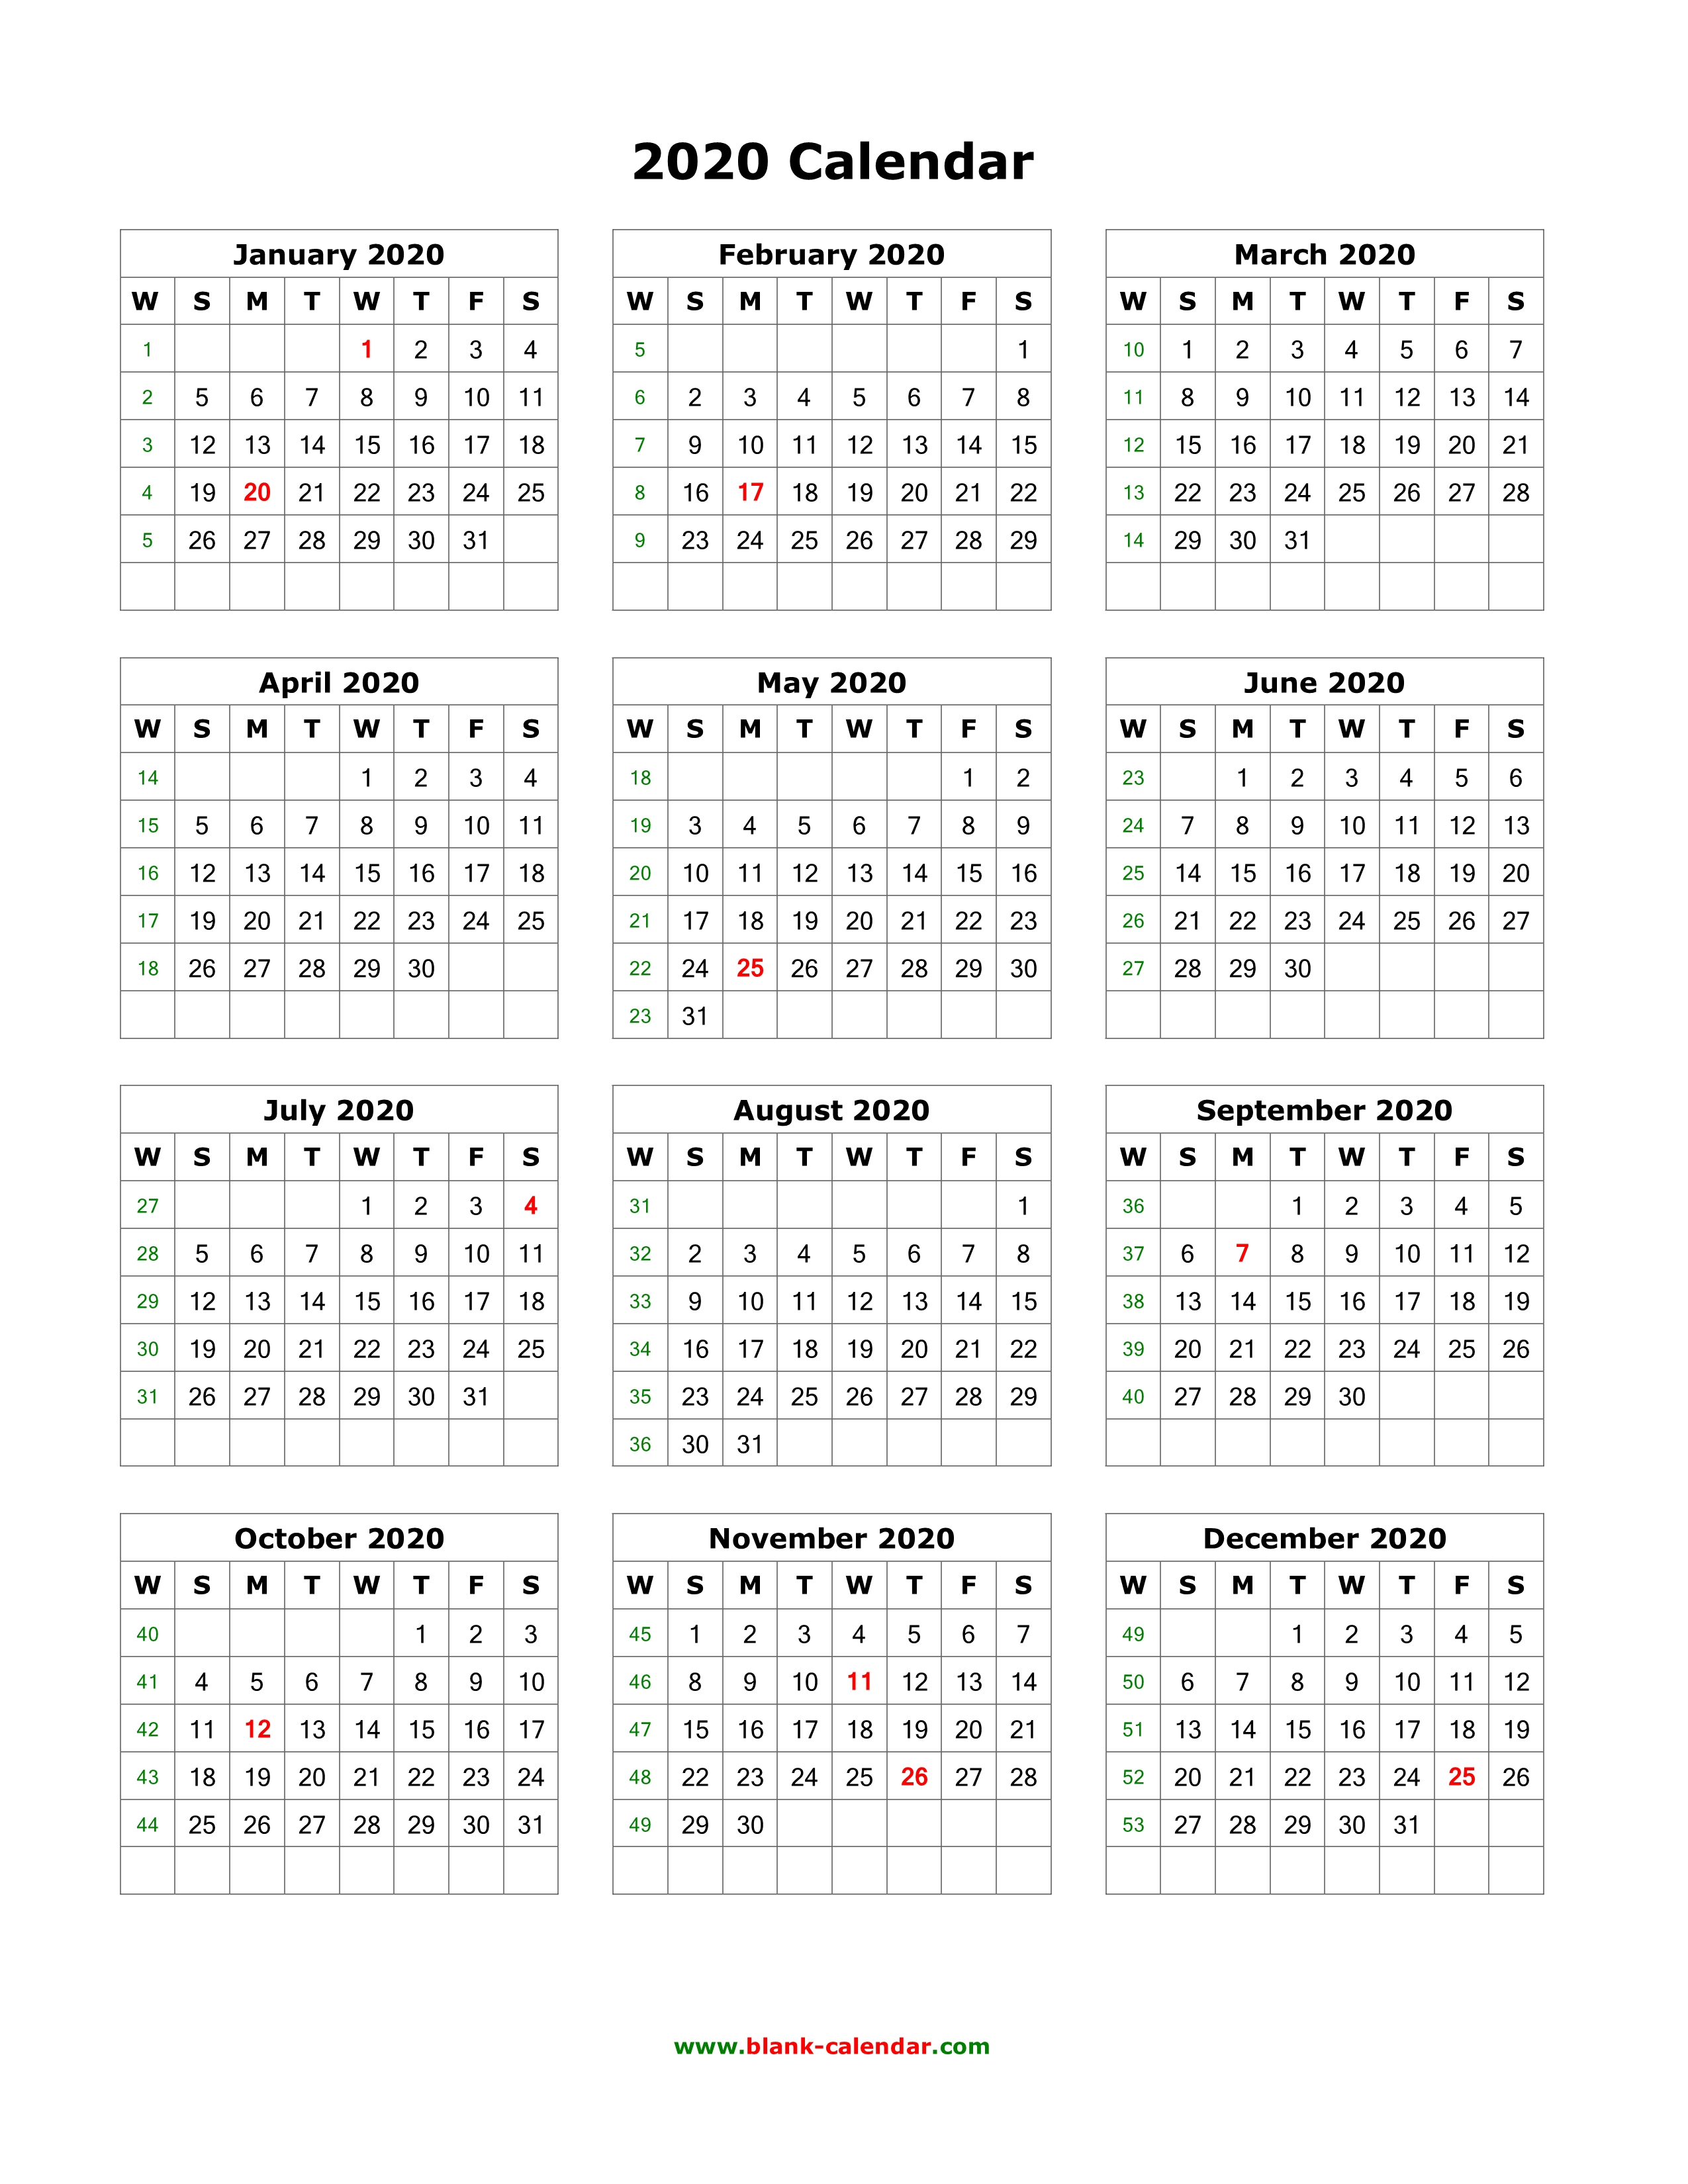 Download Blank Calendar 2020 (12 Months On One Page, Vertical) for Free Calendar 2020 Dont Have To Download